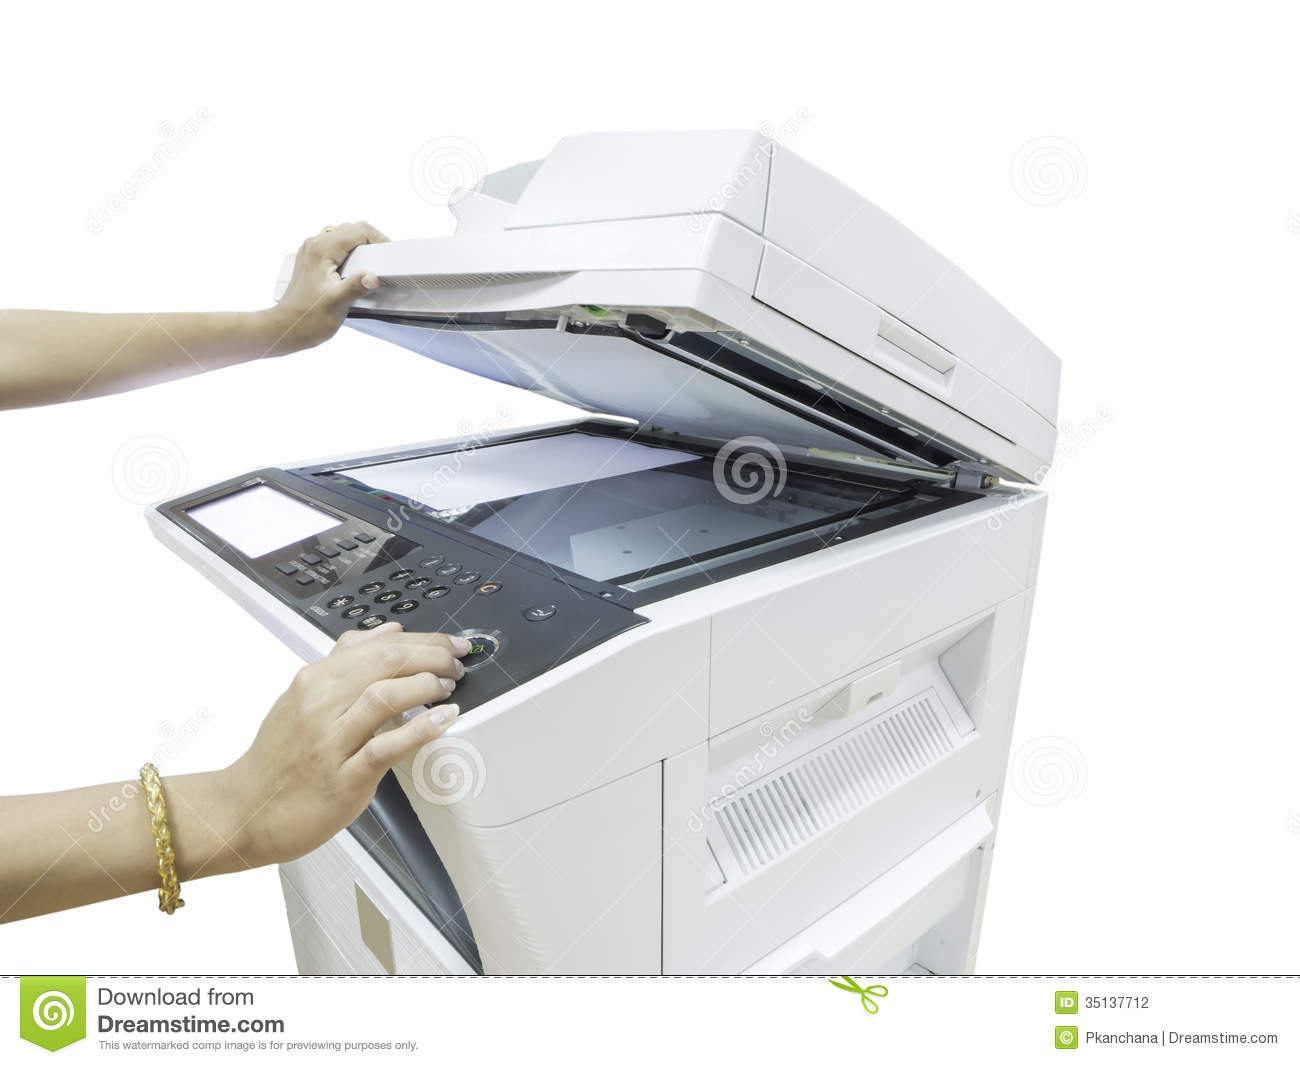 How to Start a Small Copier Business